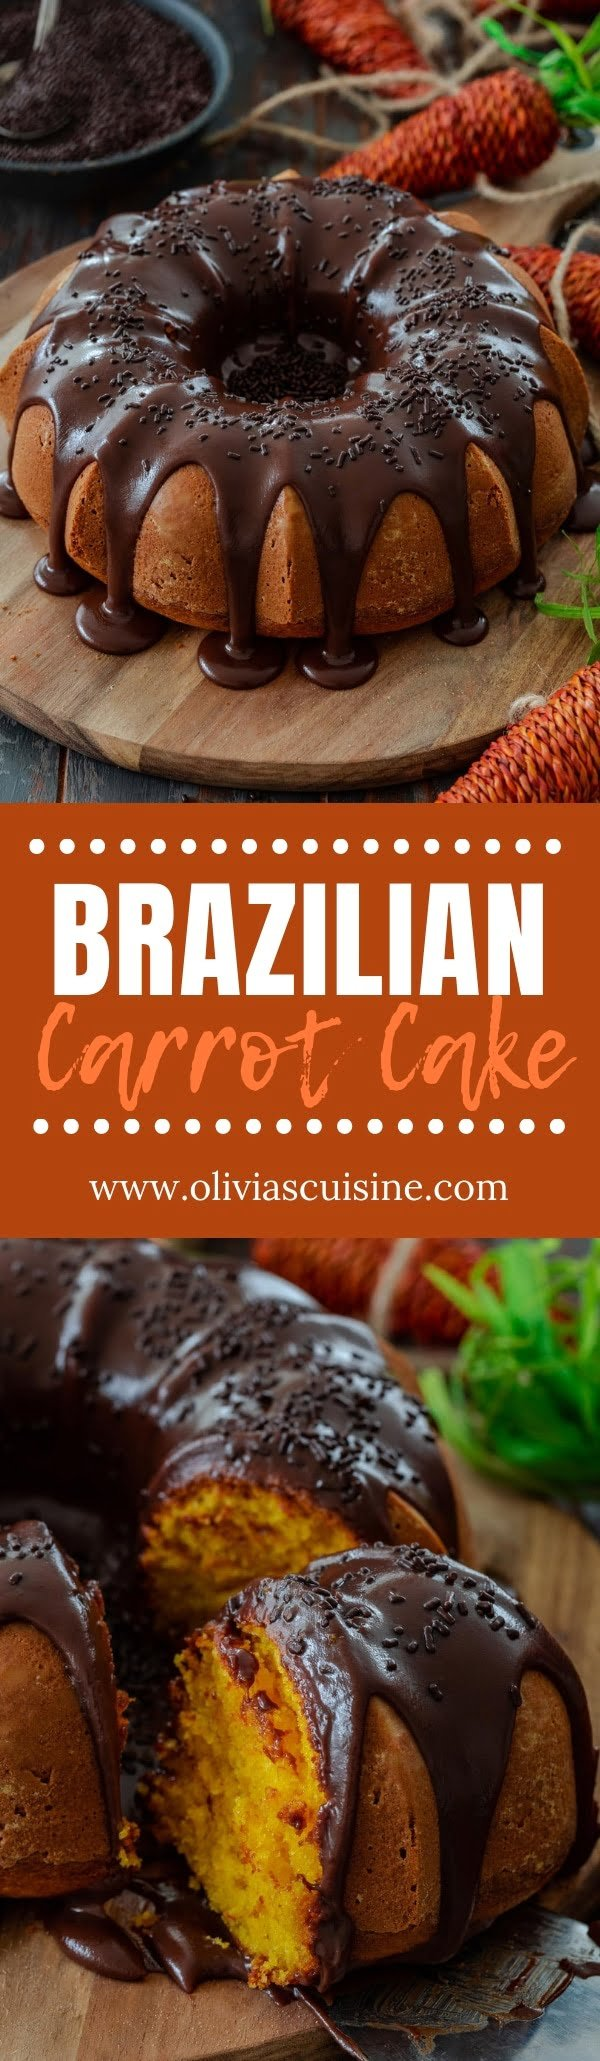 Brazilian Carrot Cake | www.oliviascuisine.com | Quite different from the American version, this Brazilian Carrot Cake is the easiest carrot cake you'll ever make! Fluffy, moist, not-too-sweet and covered with lots of brigadeiro. (Recipe and food photography by @oliviascuisine.)